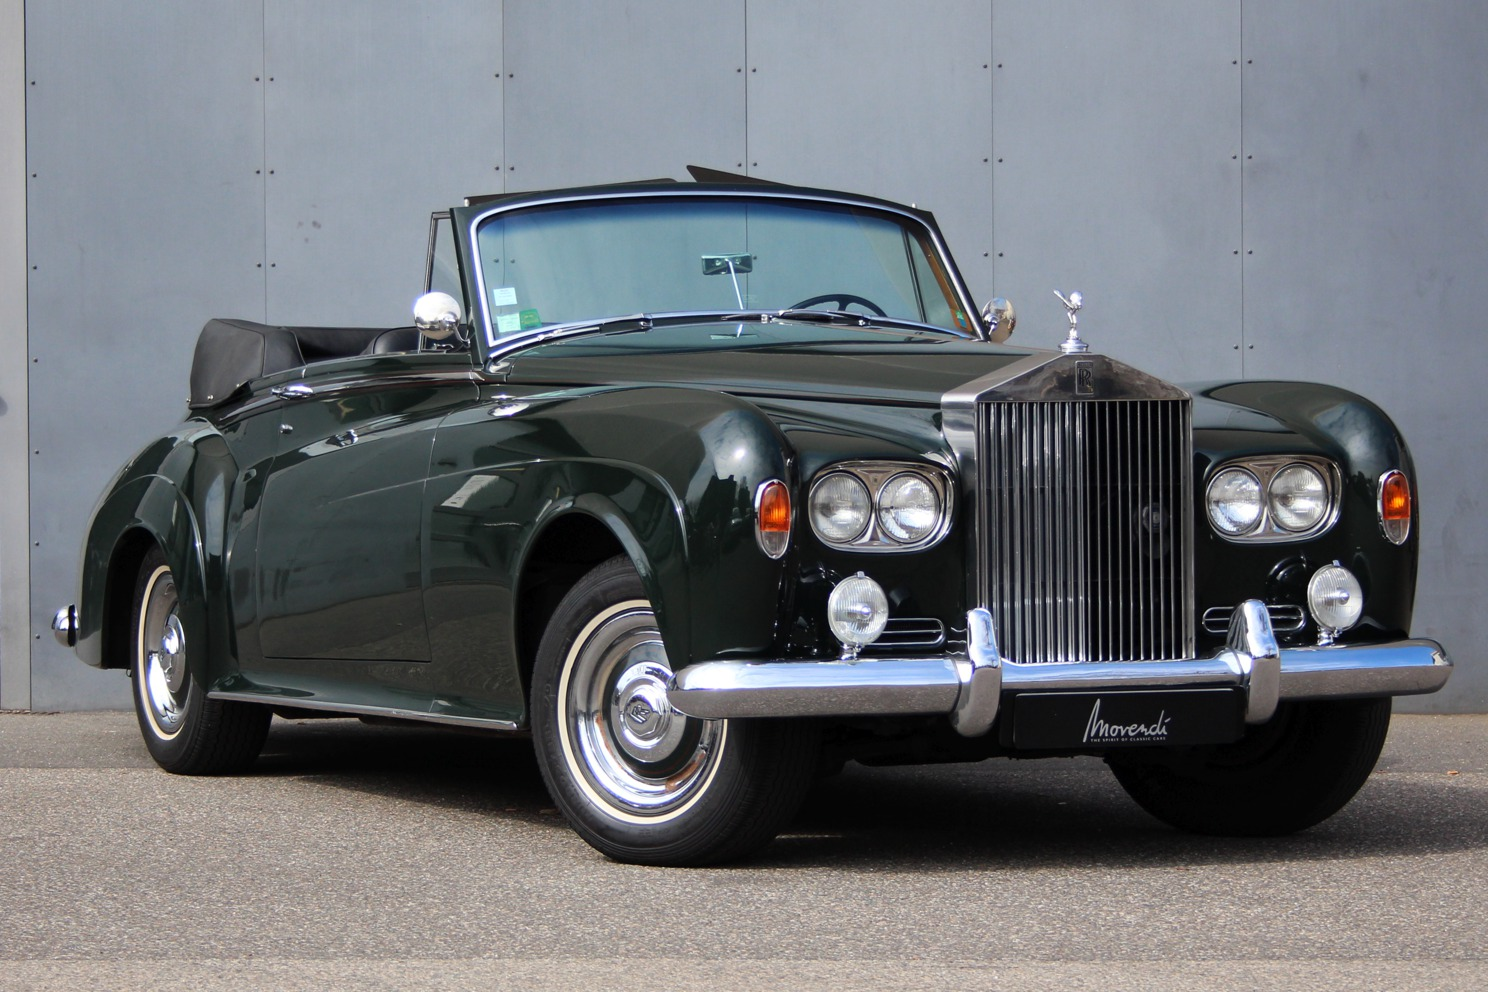 Rolls Royce Silver Cloud III Convertible